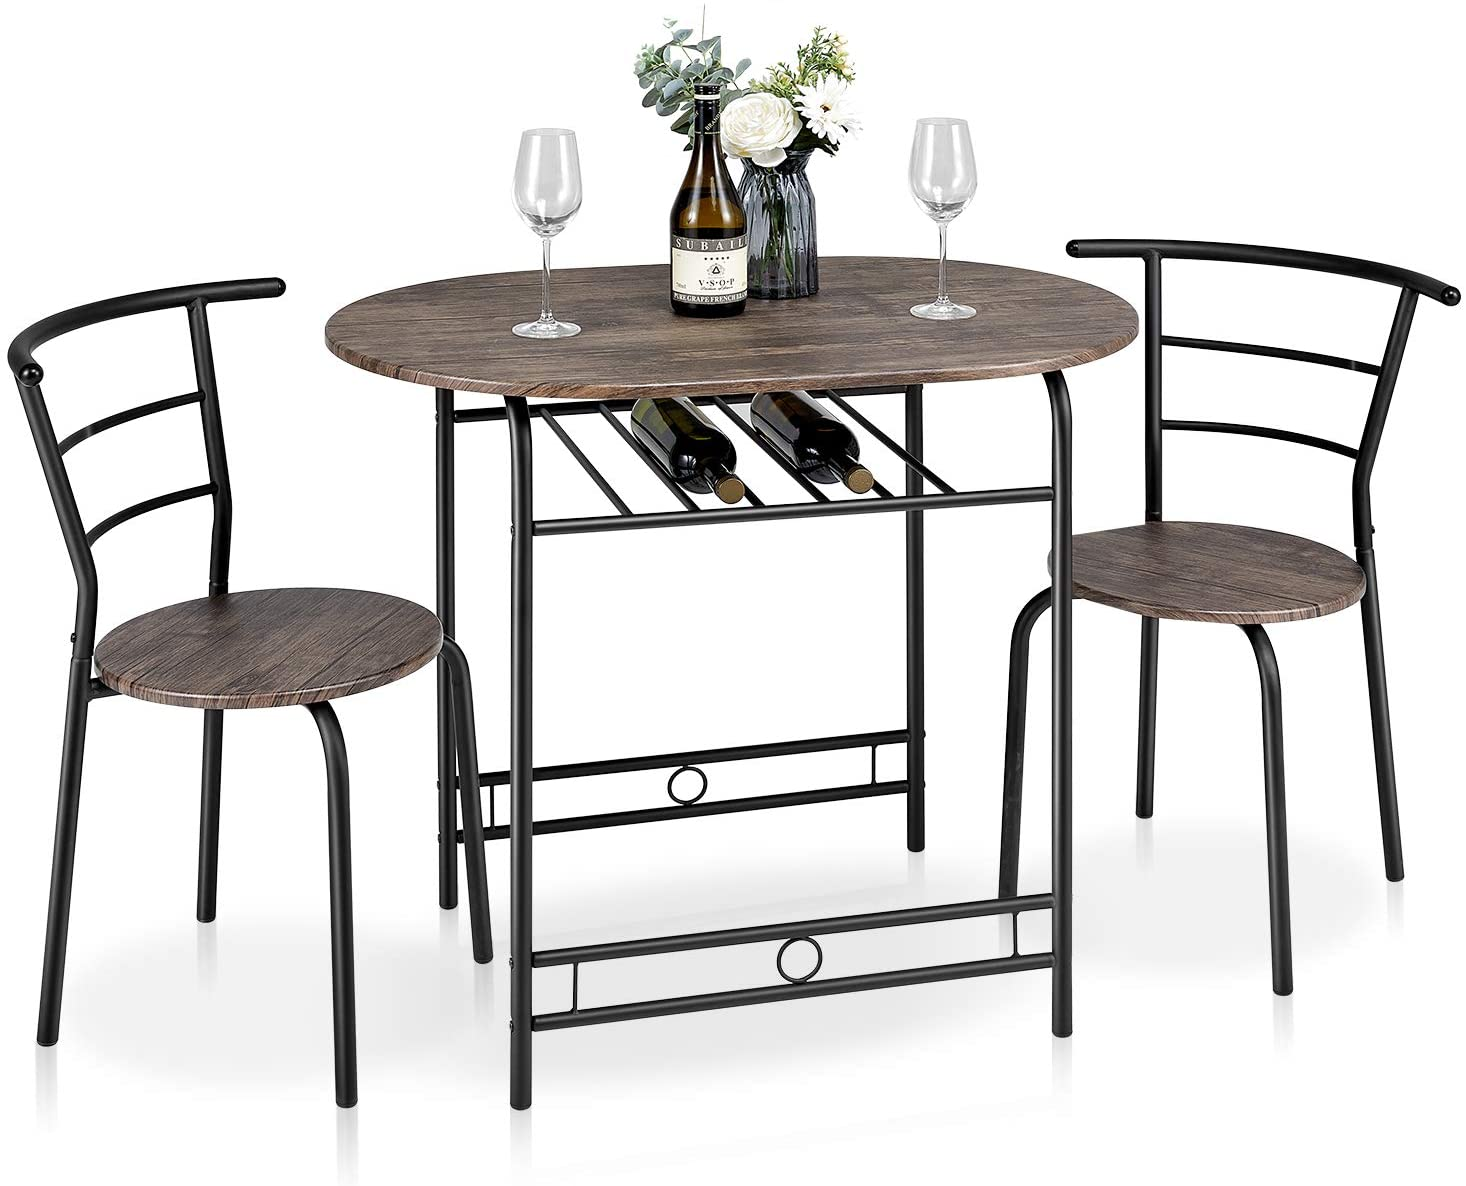 kealive 3 Piece Compact Dining Bistro Table Set with Wood Top and Metal Frame for Small Kitchen Studio, Dining Room Table Set for 2 with Shelf Storage Space Saving, Wood Grain